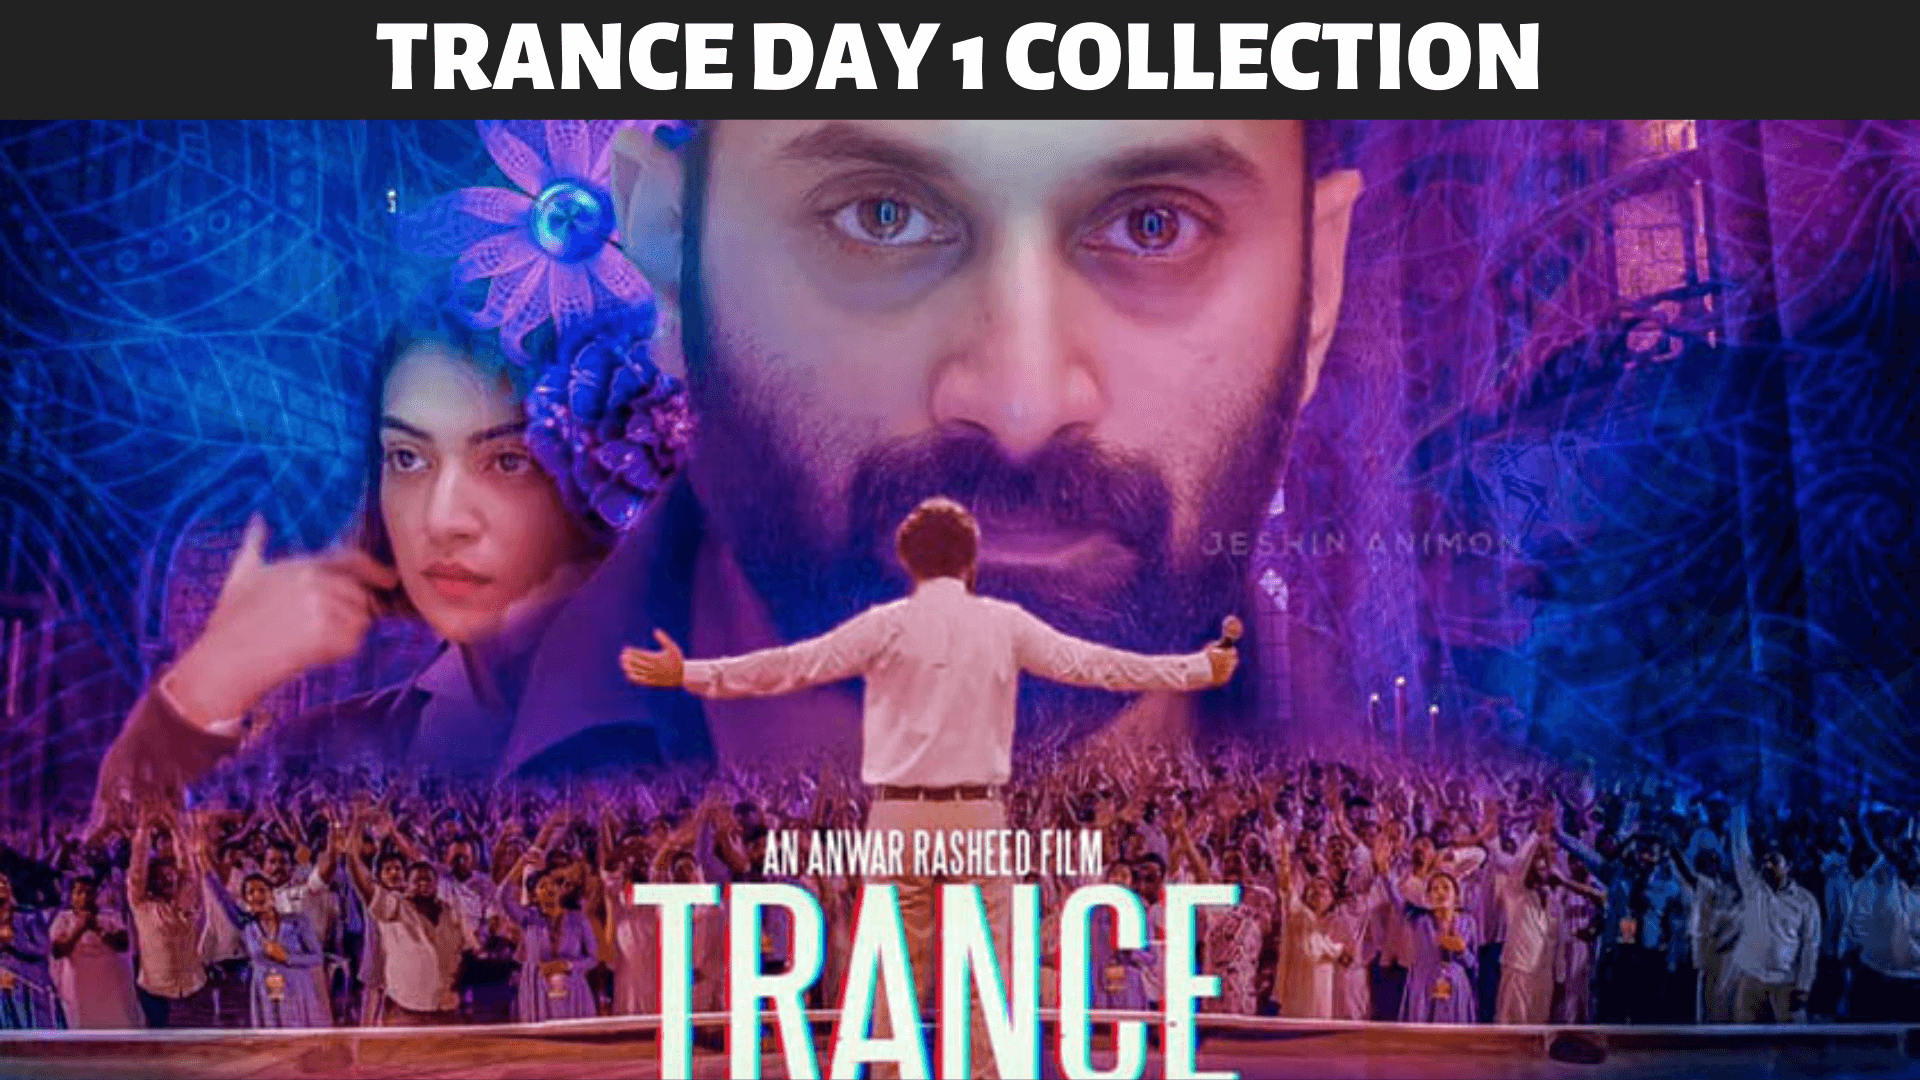 Trance Day 1 Collection – Trance 1st Day Collections at Box Office Fahadh Faasil, Nazriya Nazim